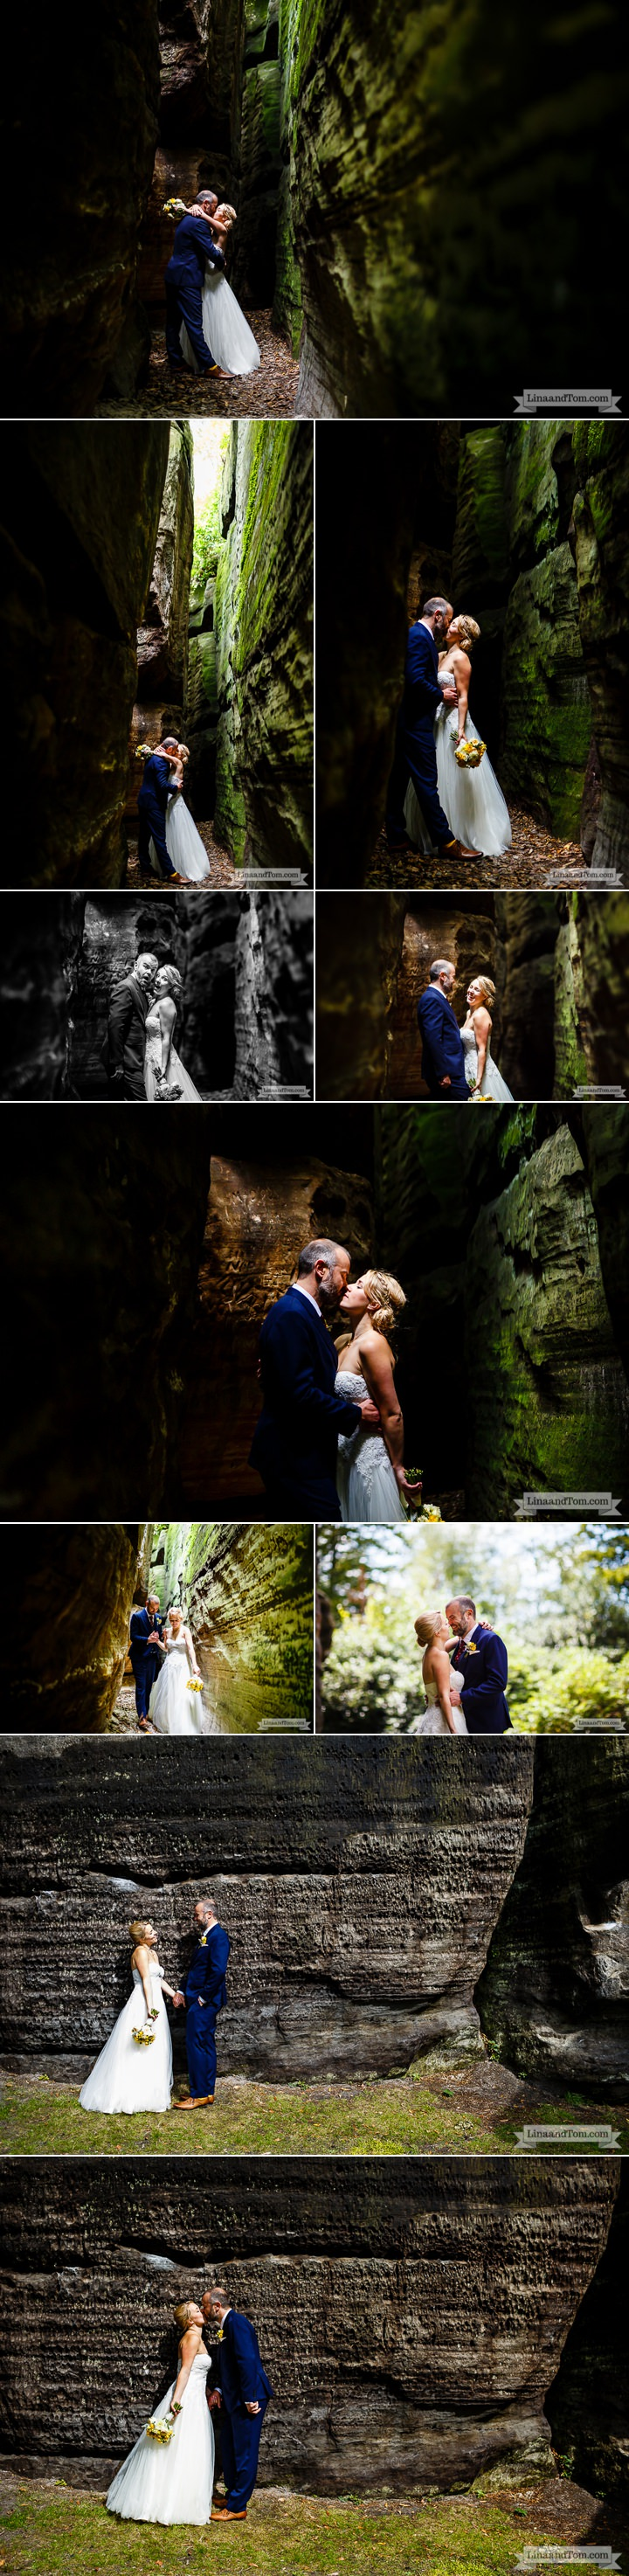 Best high rocks wedding photography